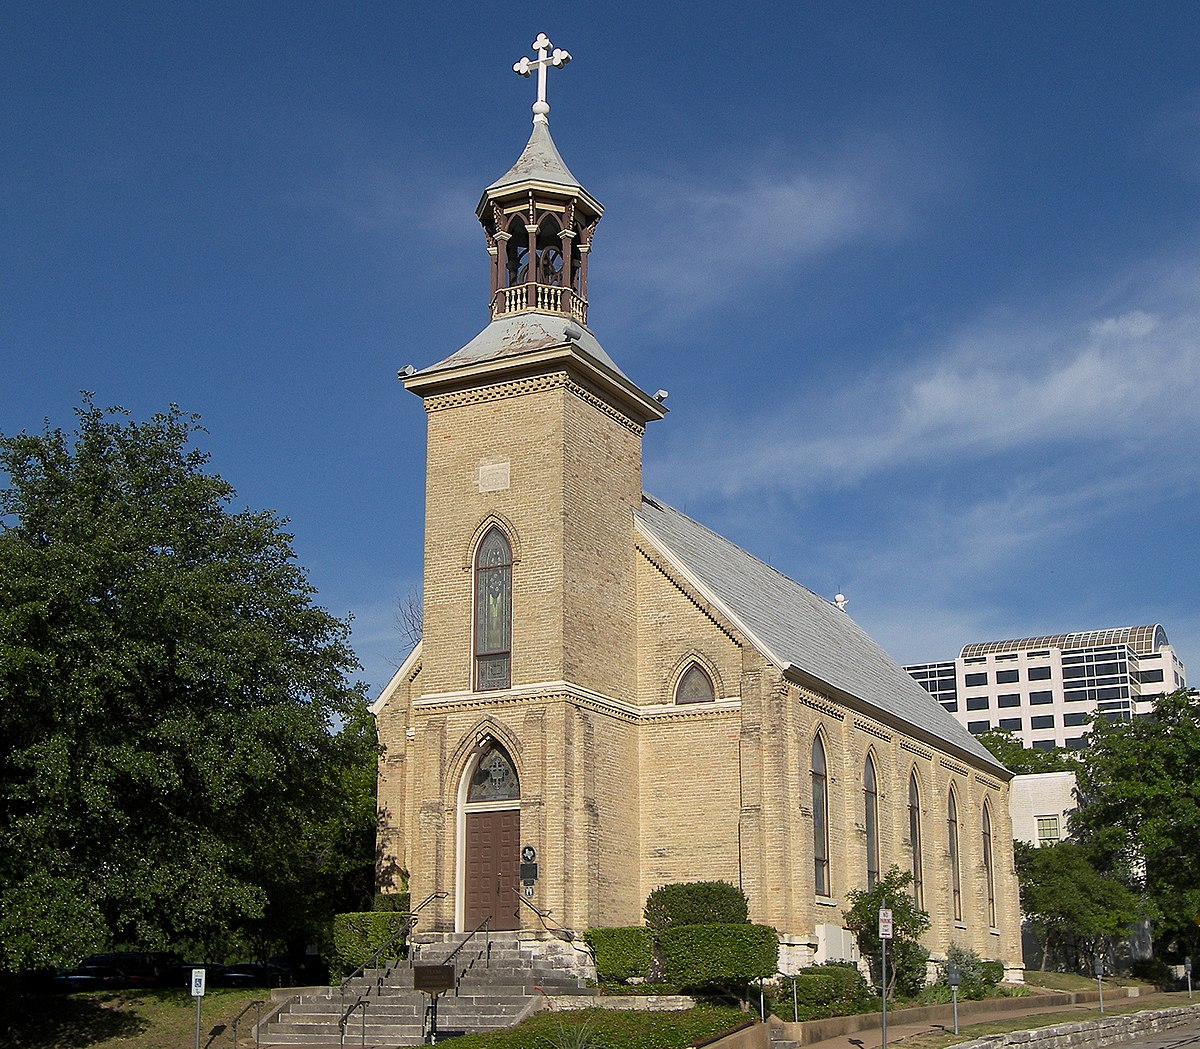 church lutheran gethsemane austin cathedral between anglican difference lutheranism calvinism texas protestant 2009 churches historic file catholic history wikipedia lutherans